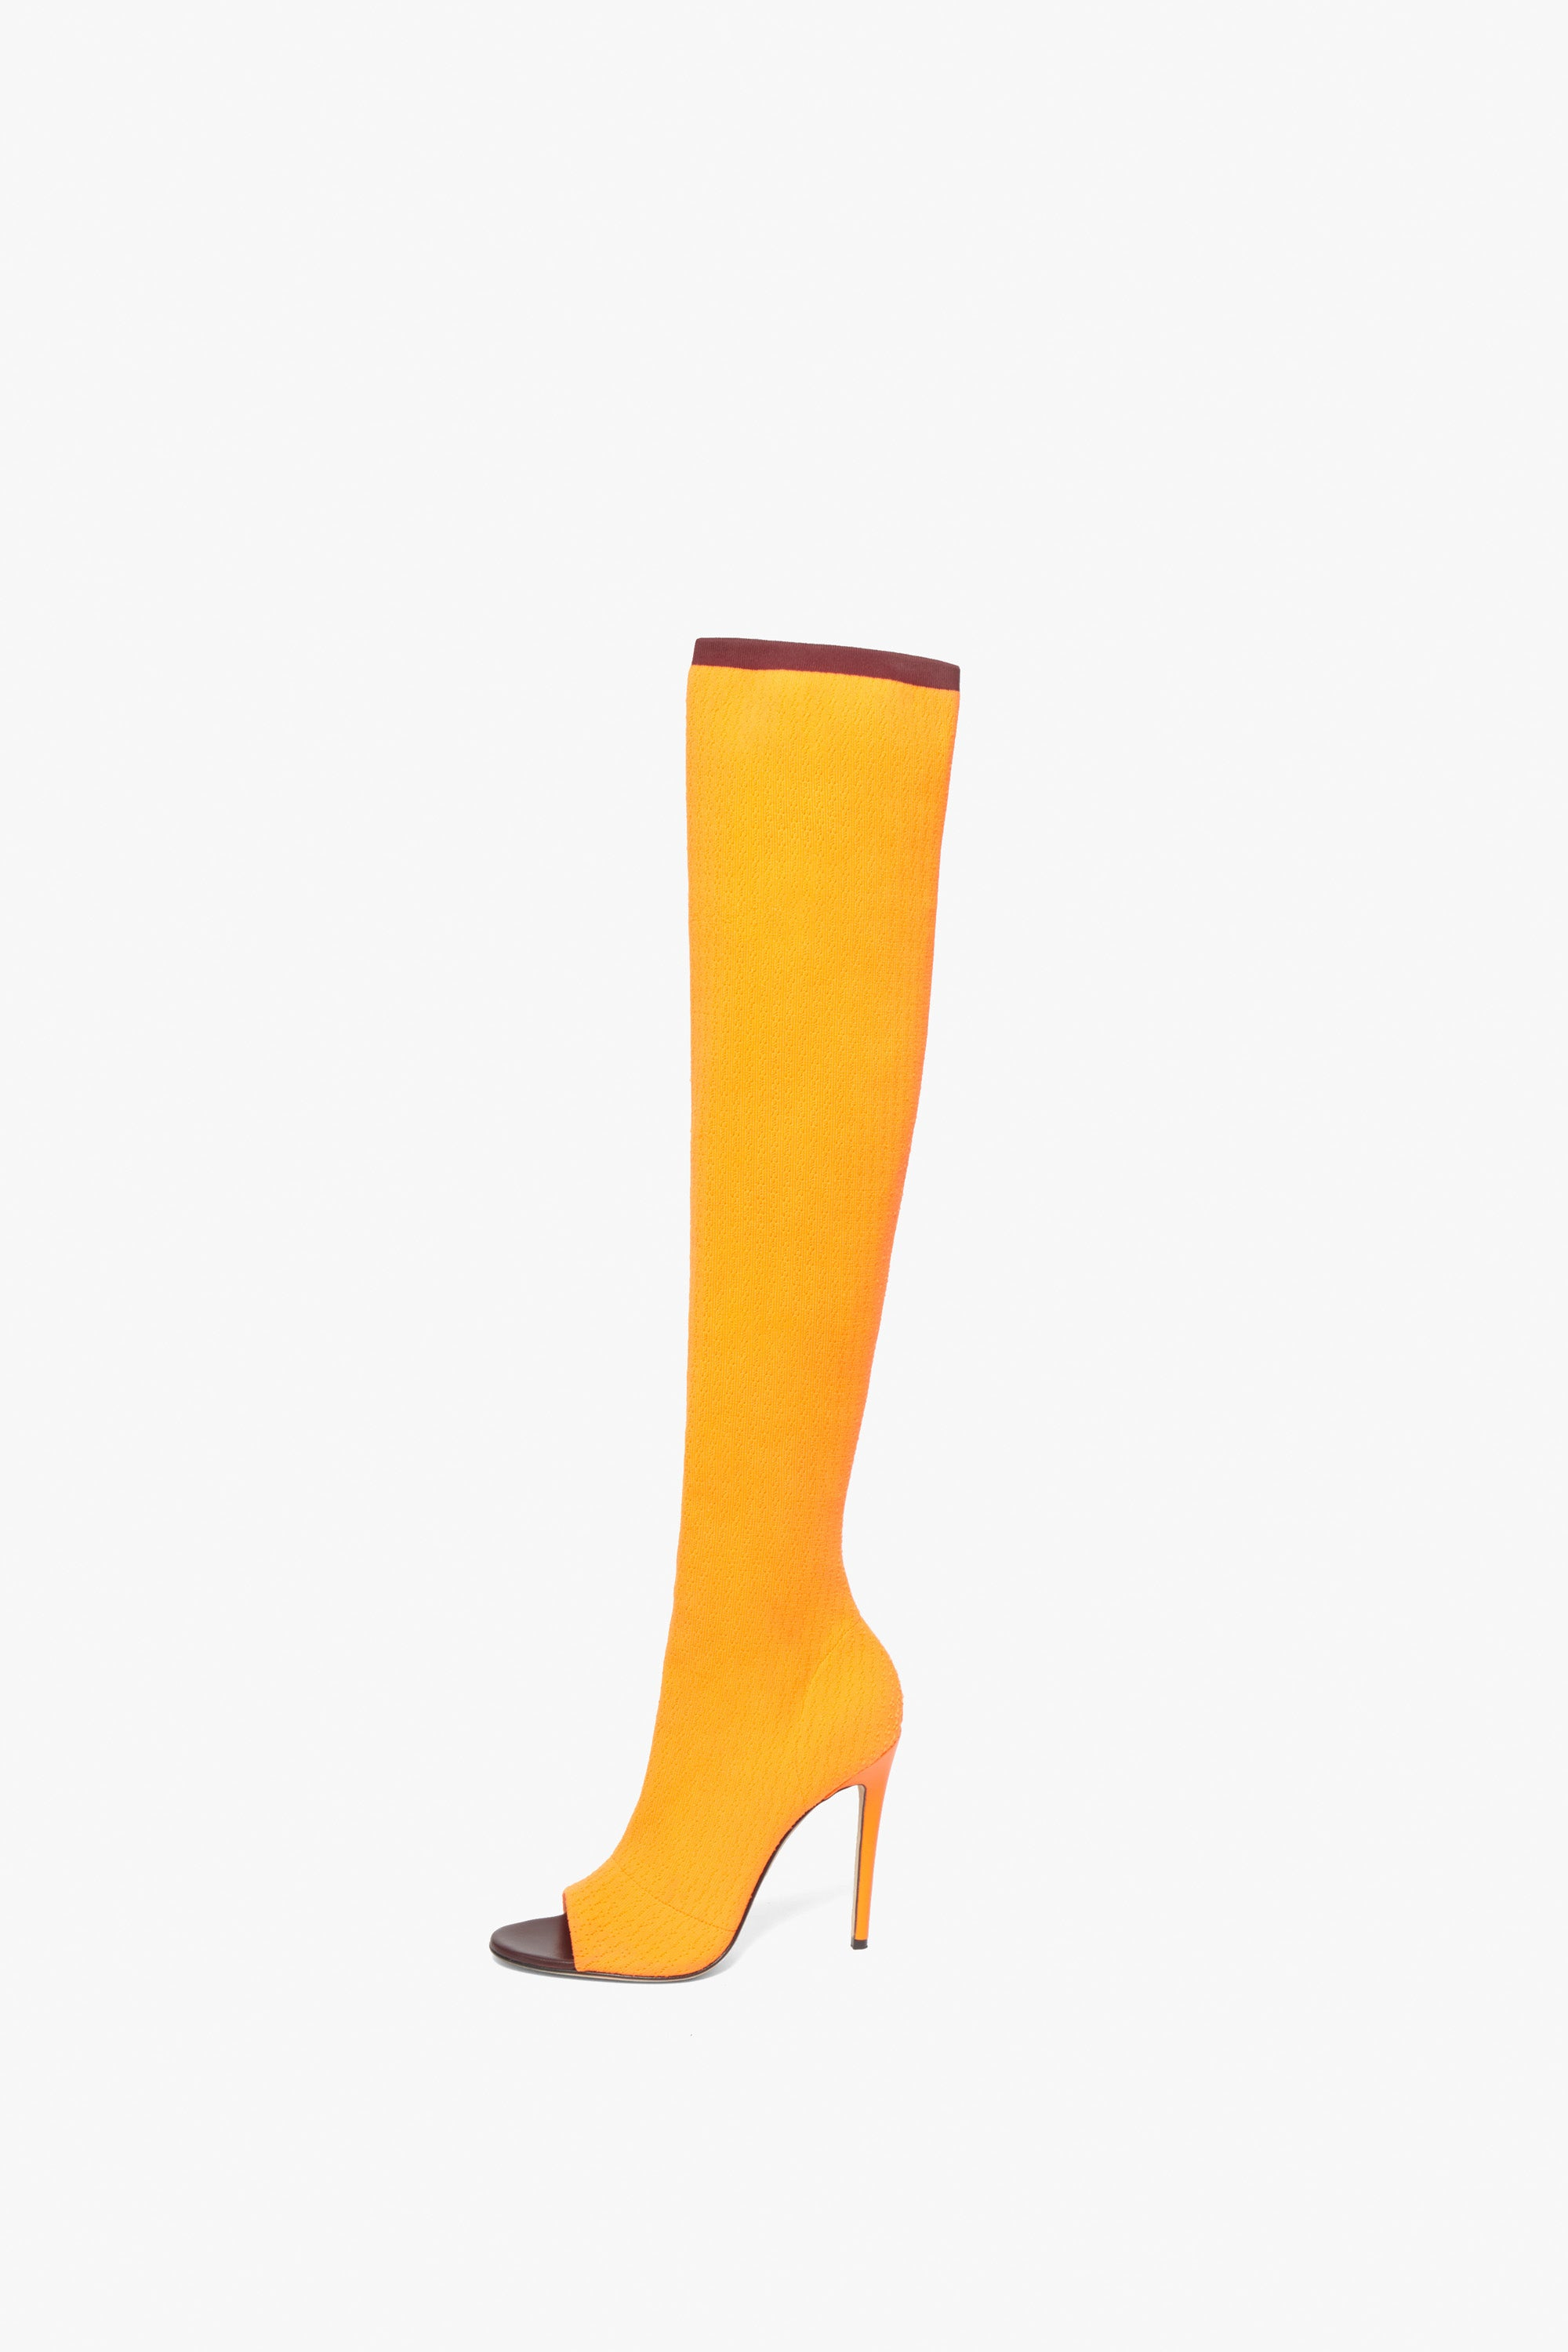 Jasmin 115MM Knit Boots In Bright Orange